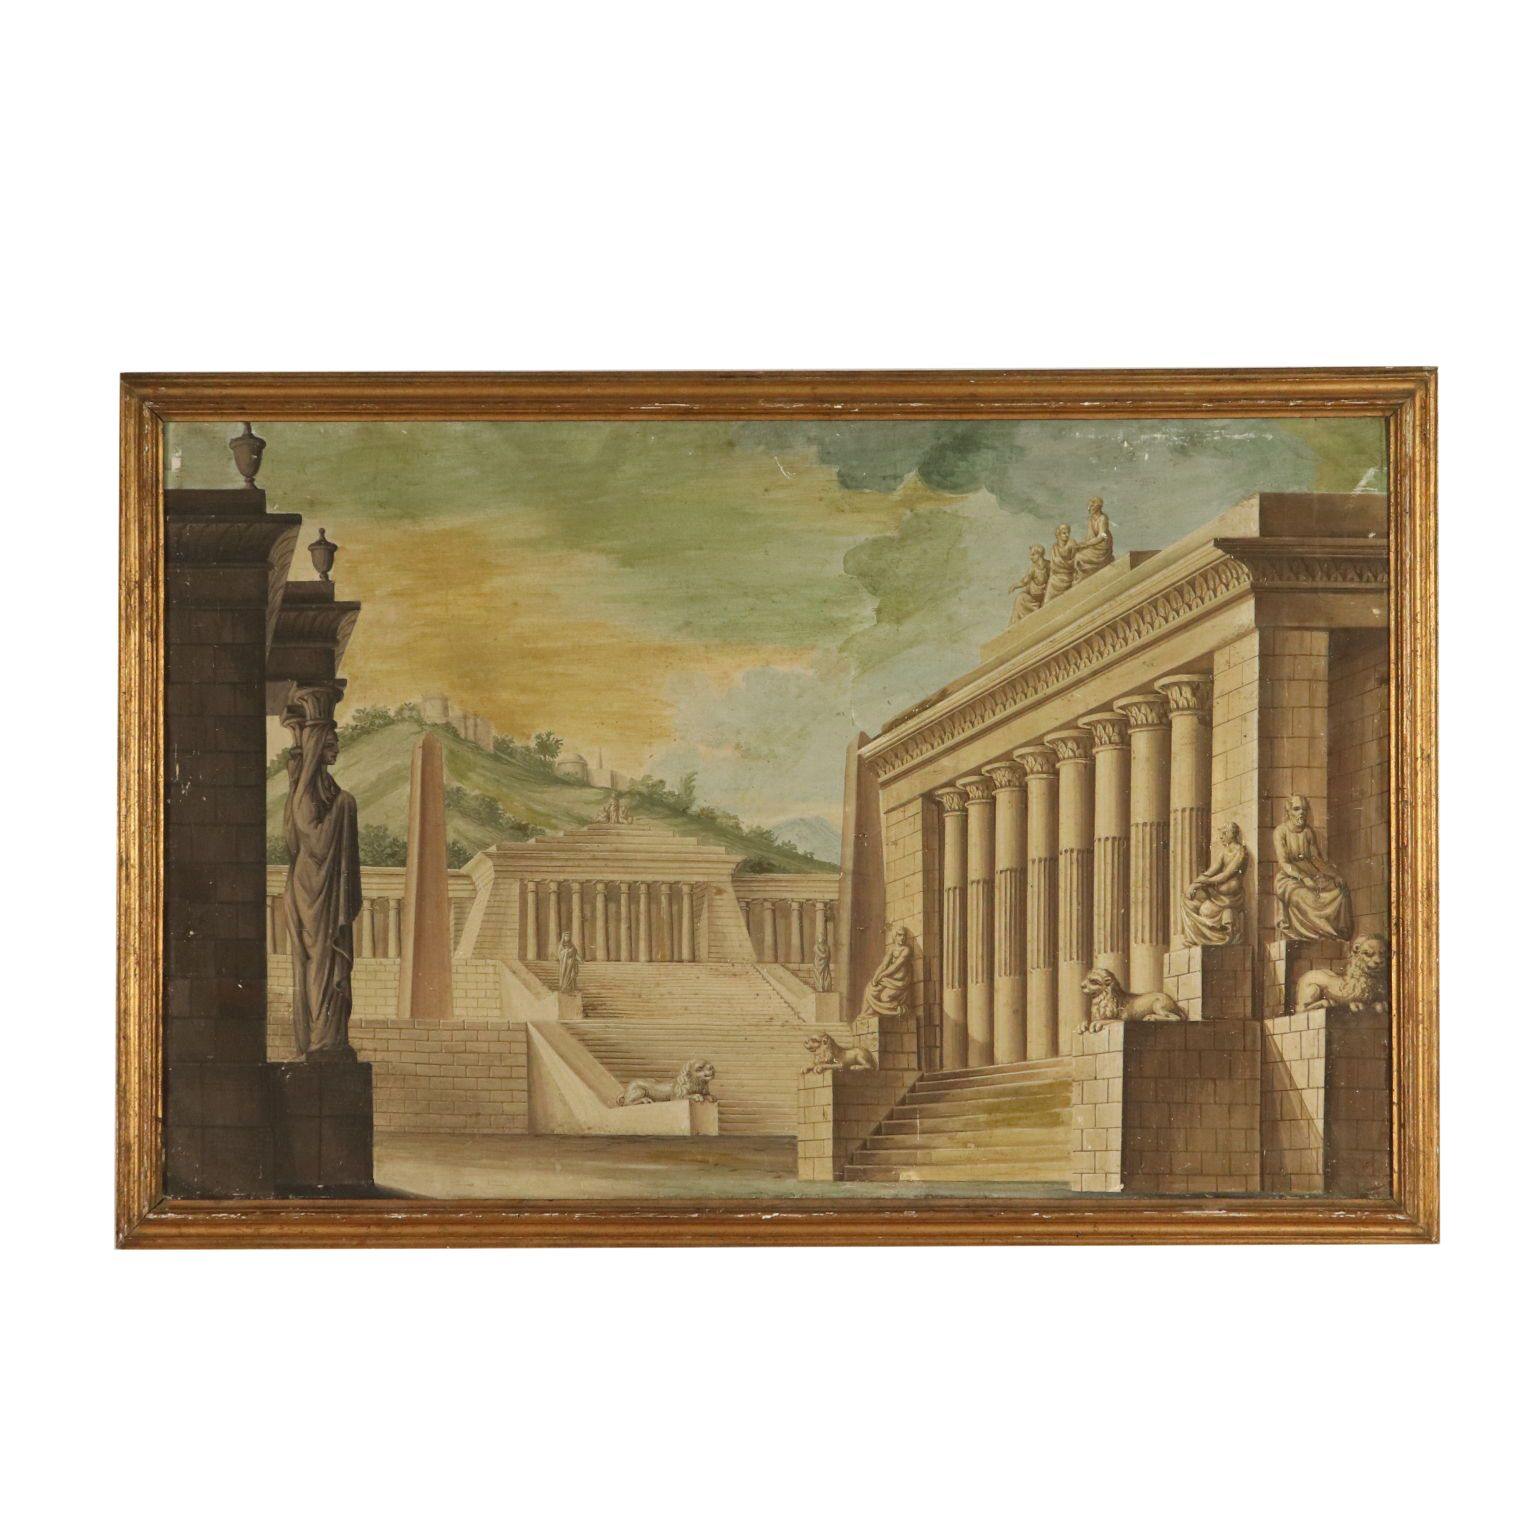 Kunst: Architectural Landscape Gilded Frame Tempera 19th Century